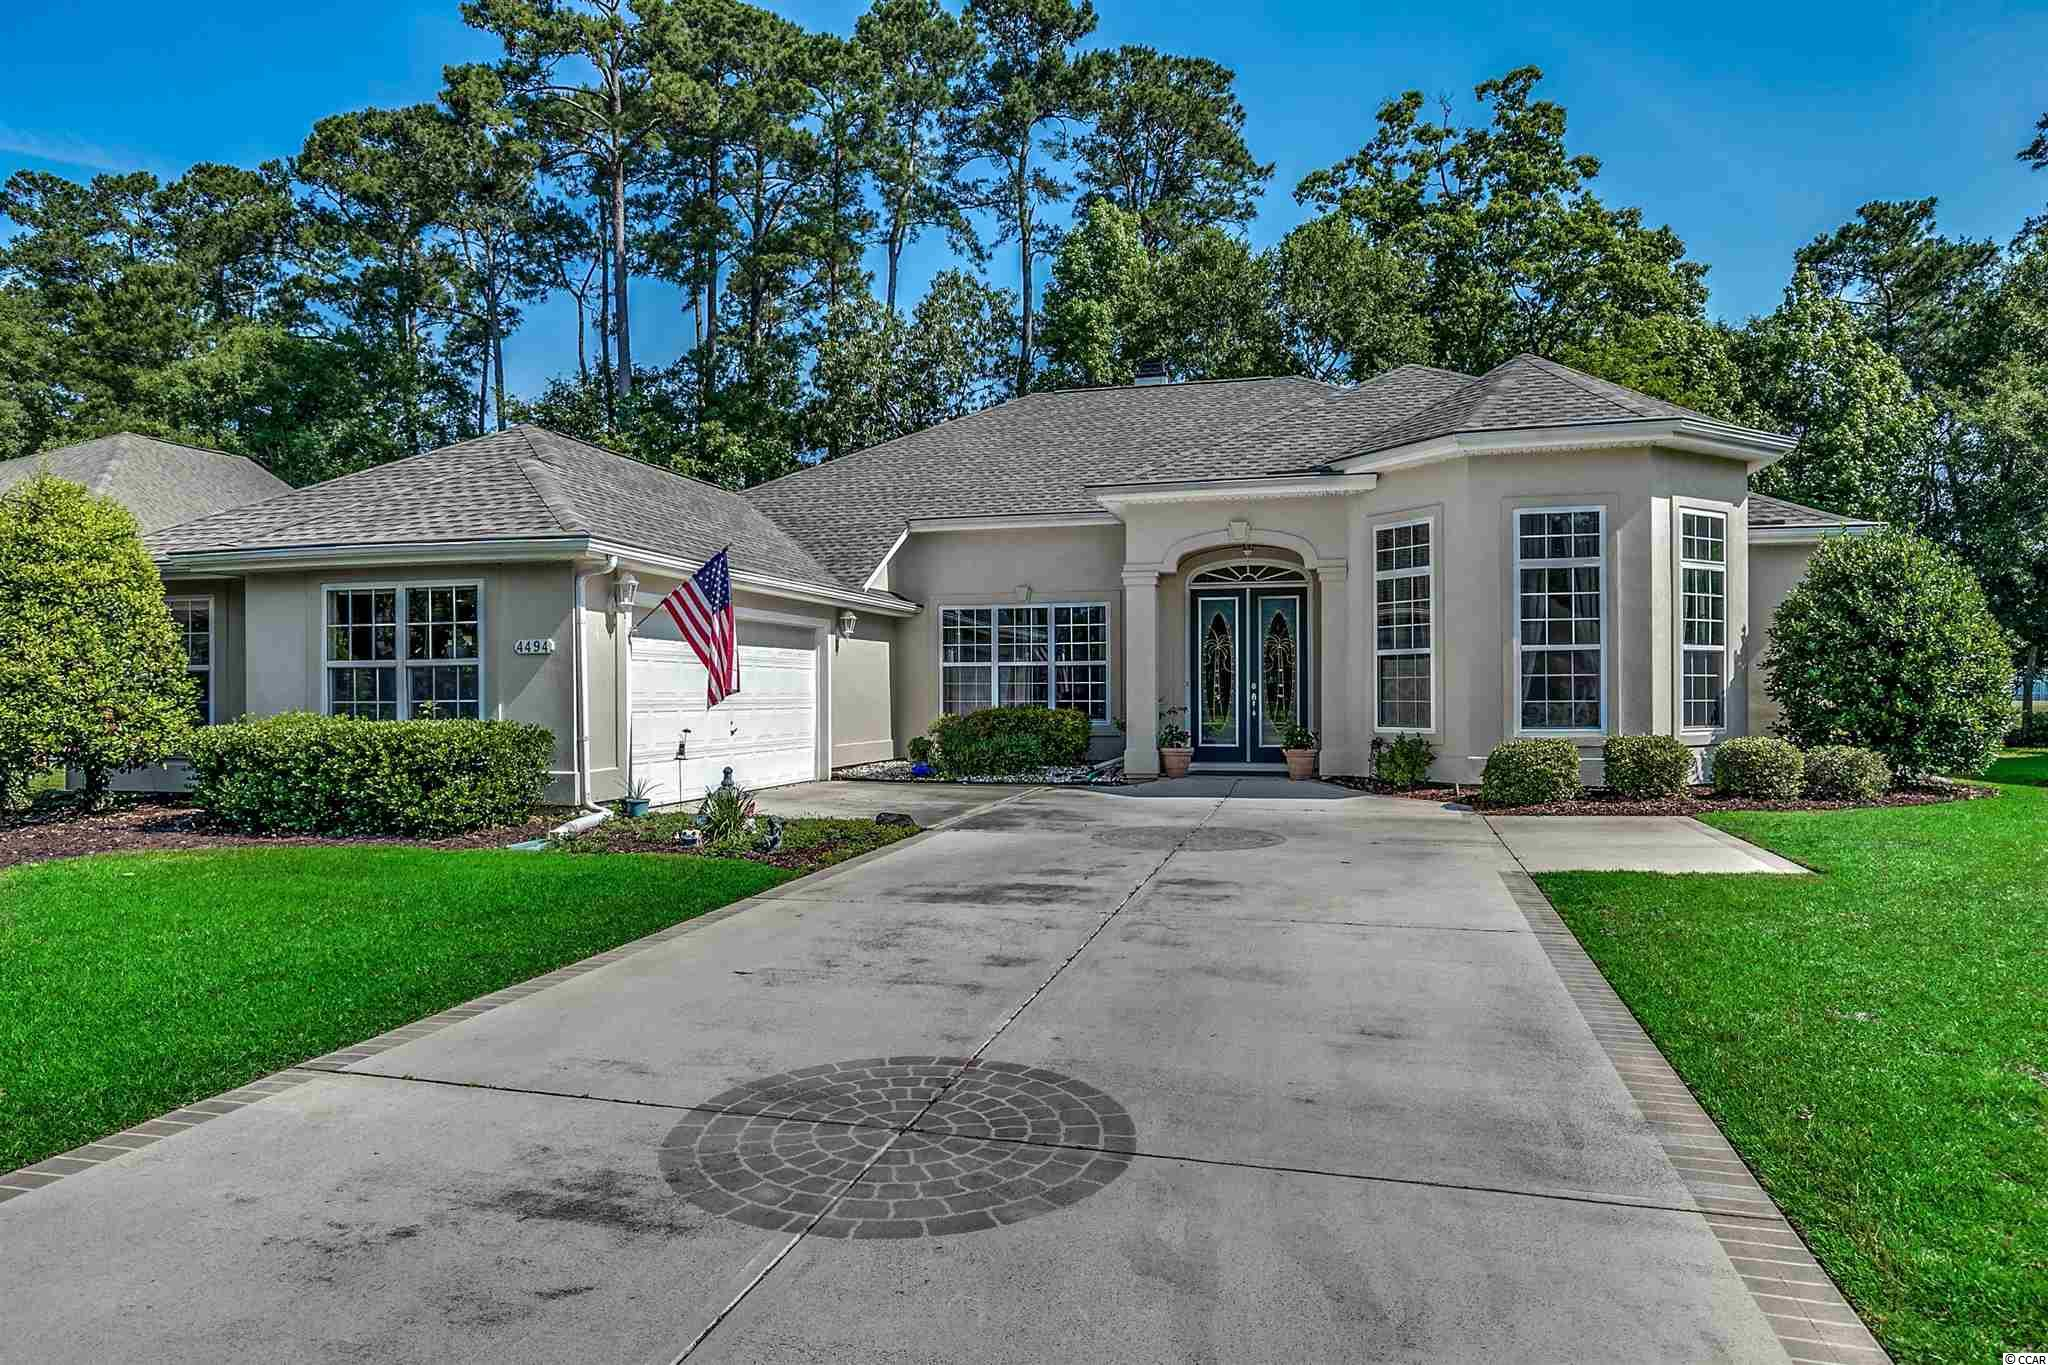 """Immaculate home in desirable gated community of Wachesaw East. Open floor/split bedroom plan, fourth bedroom could be used as a guest suite with private bathroom. Upon entering this beautiful home, you are greeted with foyer, dining room and formal living room with hardwood floors. The large kitchen has a work island, 40"""" cabinets along with appliance pantry. The formal living room has a double sided fireplace shared with the family room. Enter the spacious master bedroom through double doors with large master bath. Large screened in room and outdoor patio overlooking the signature 17th hole. Amenities include pool, gym and security. Near famous Marsh Walk restaurants, Huntington Beach State Park, shopping and Brookgreen Gardens."""